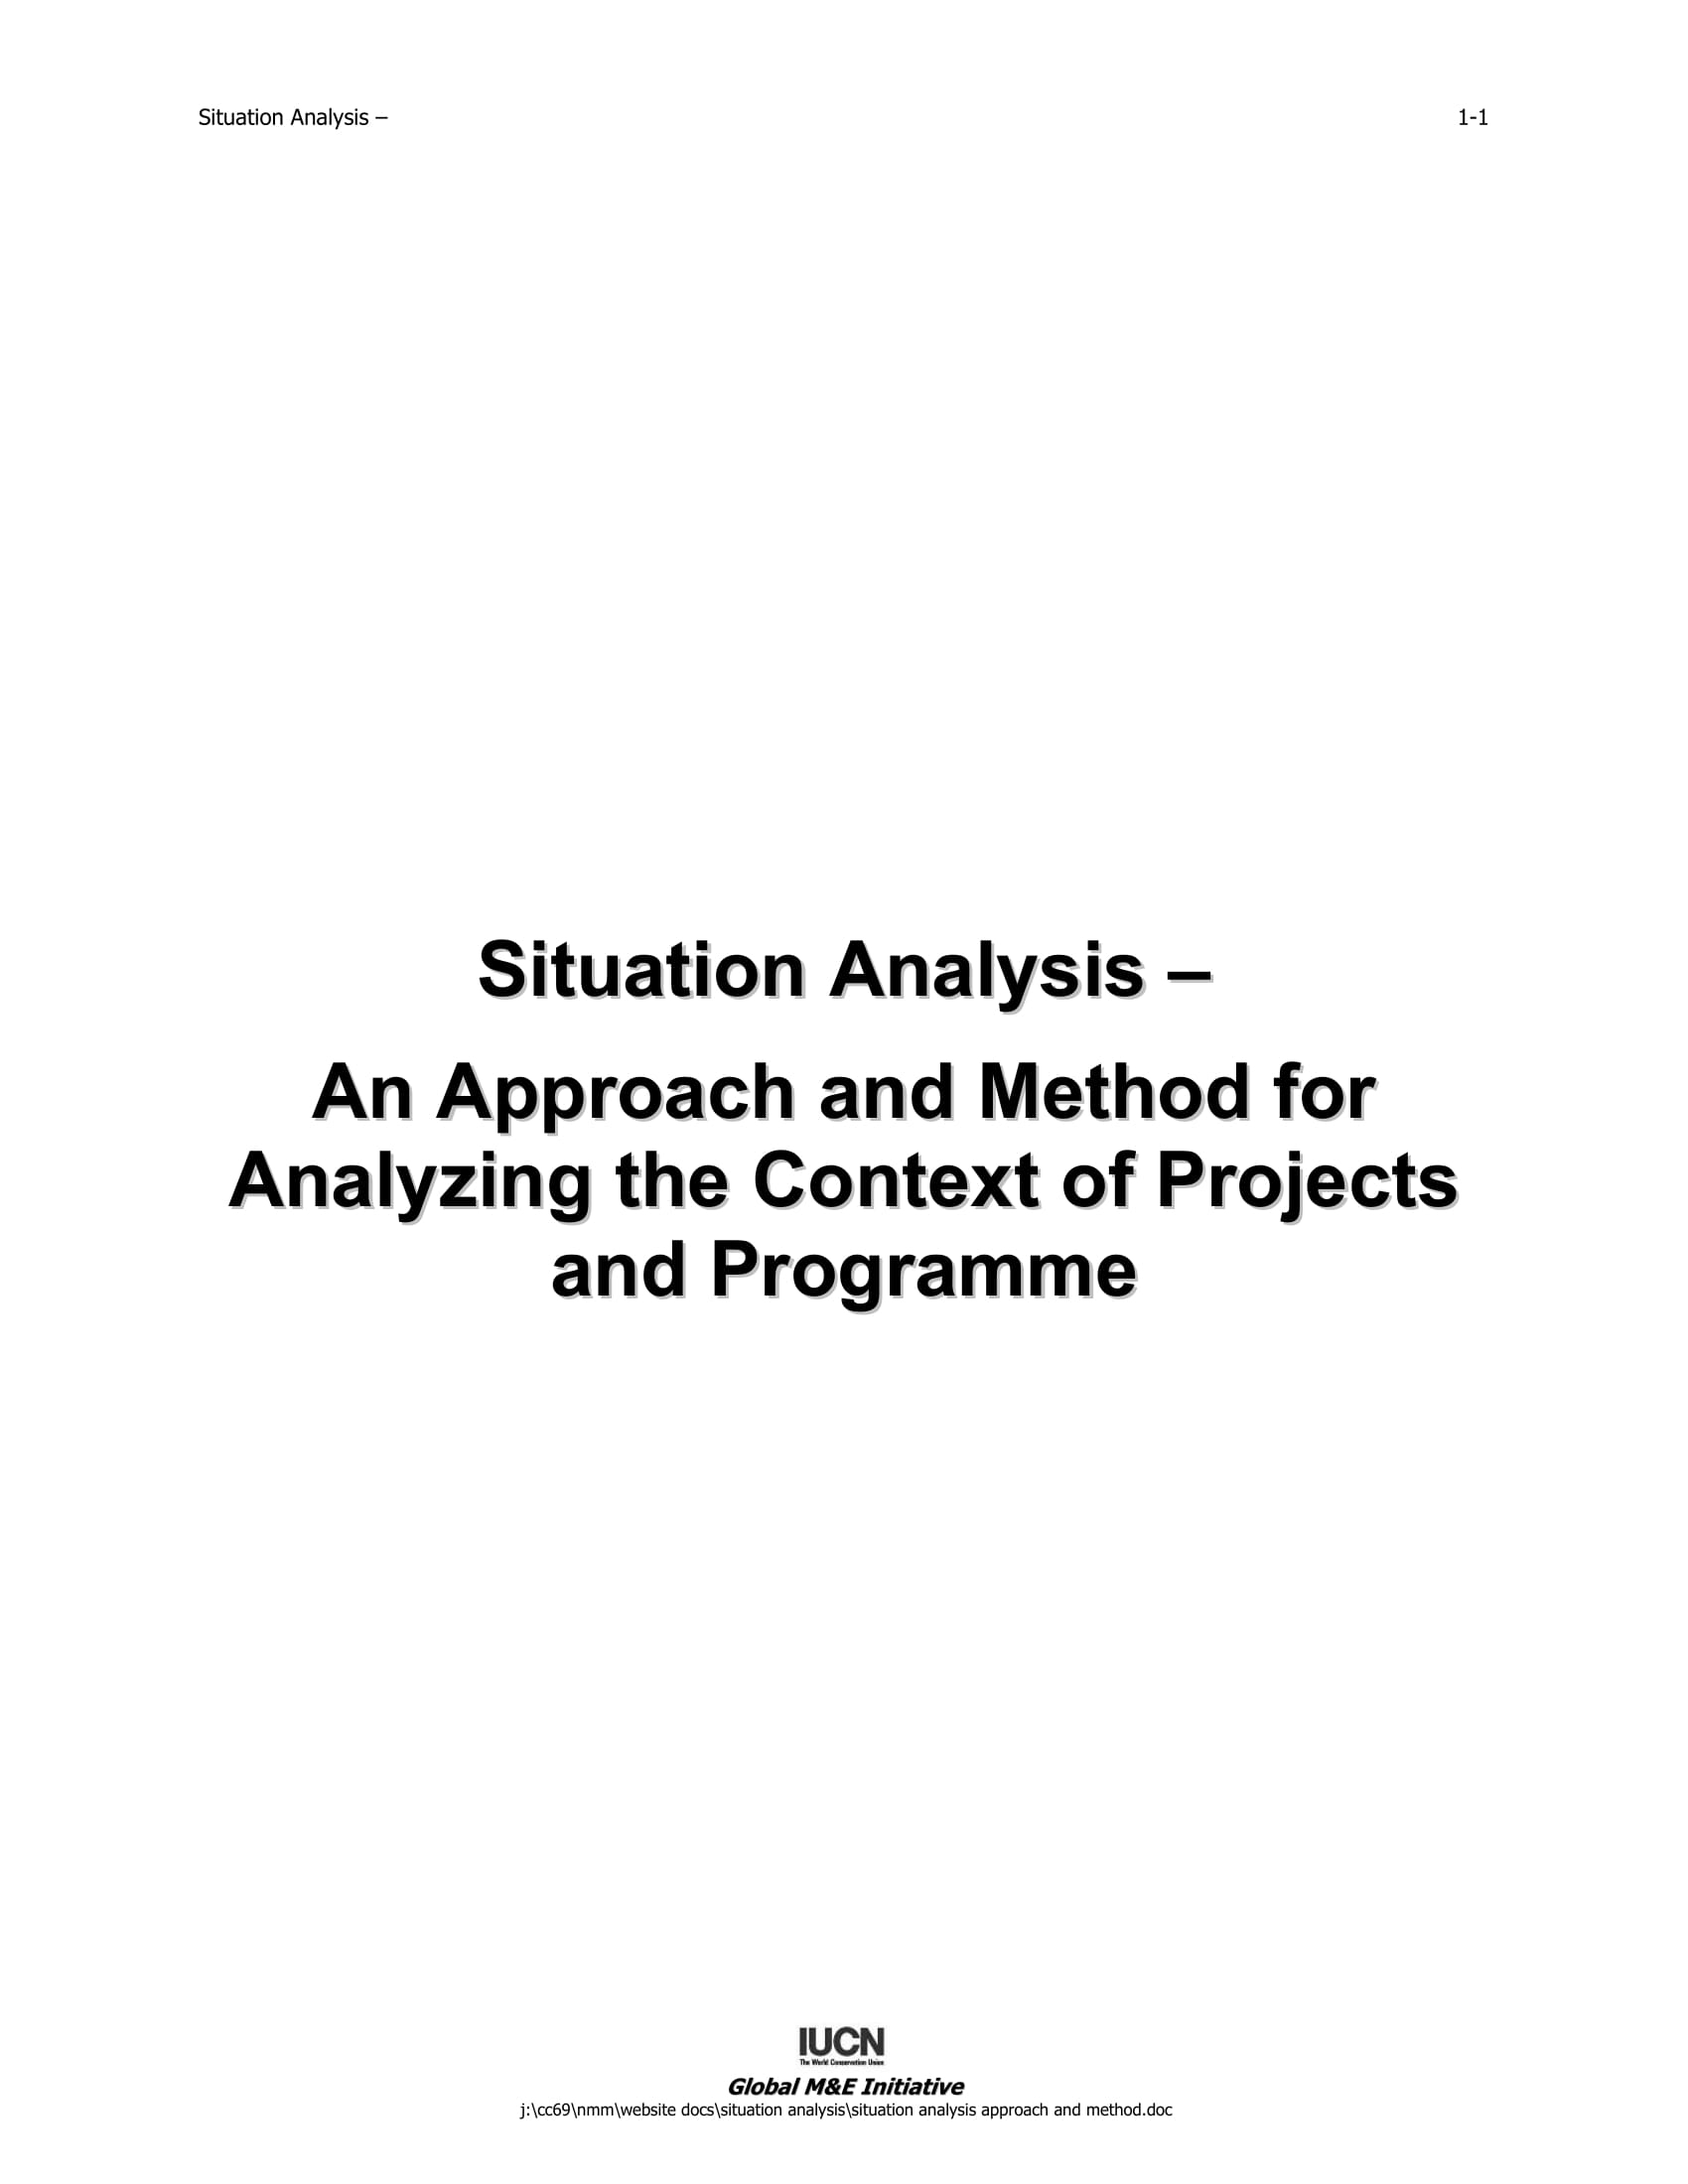 situation analysis an approach and method for analyzing the context of projects and programme example 01